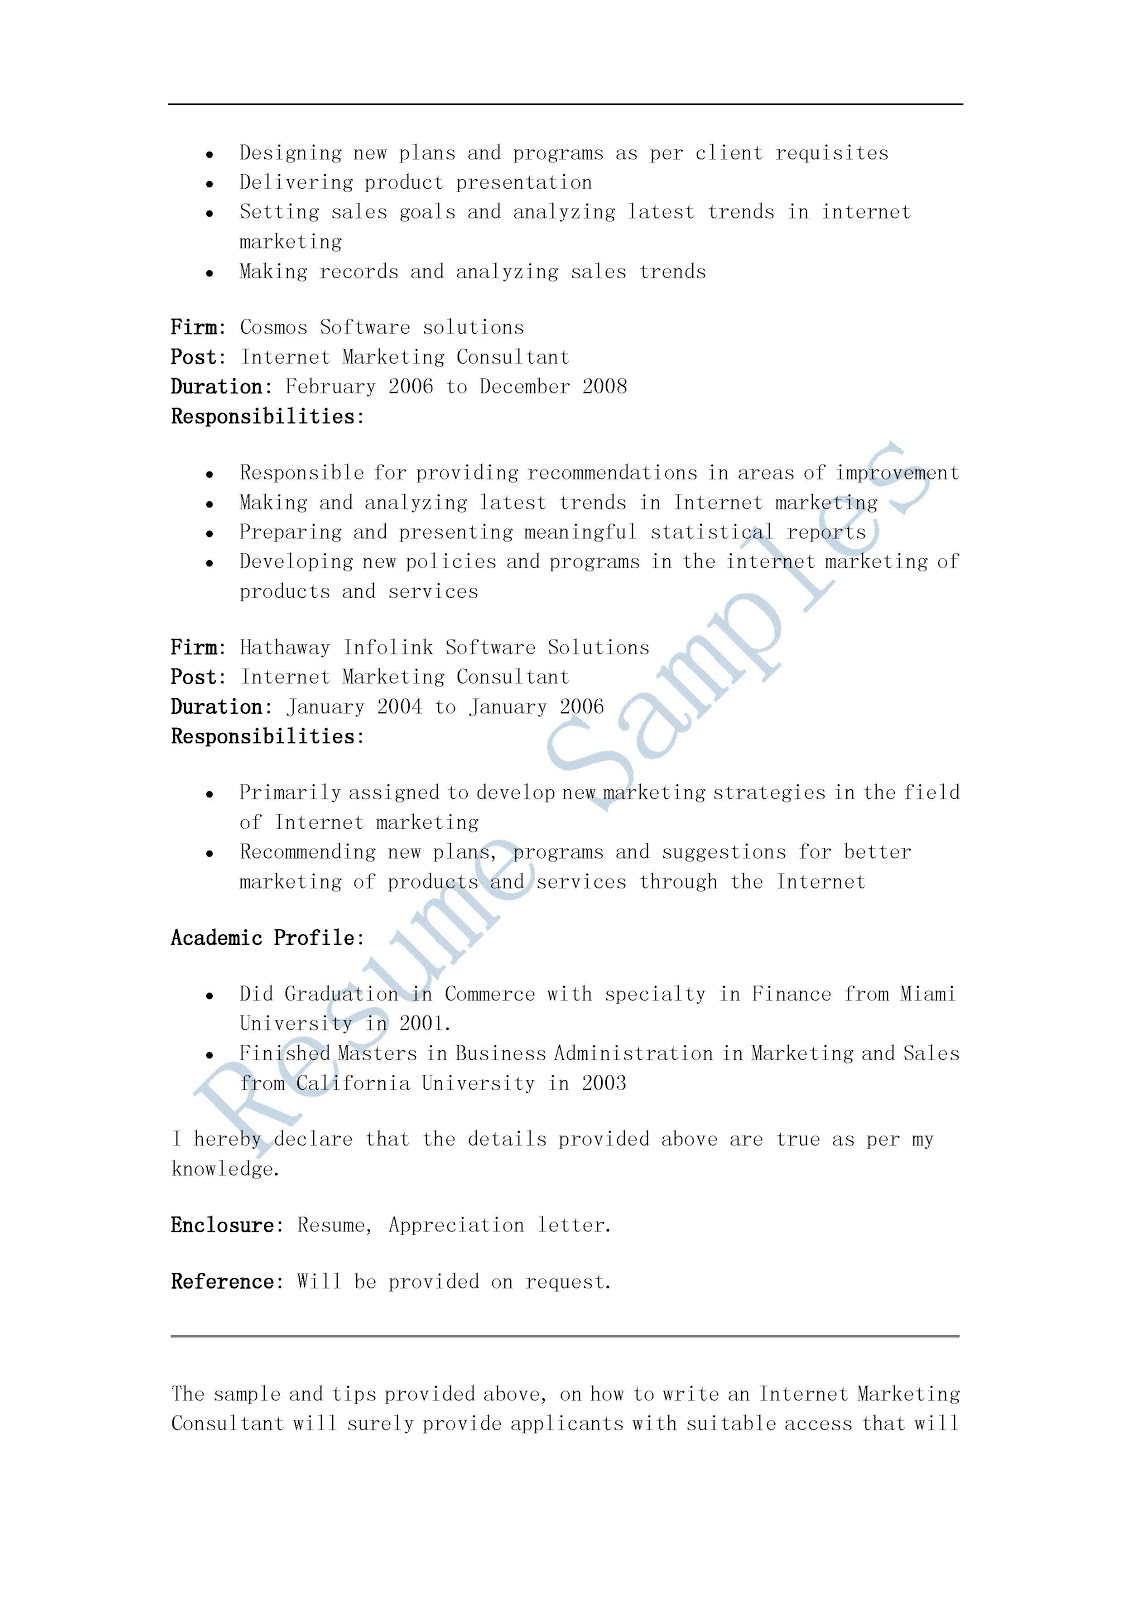 resume samples  internet marketing consultant resume